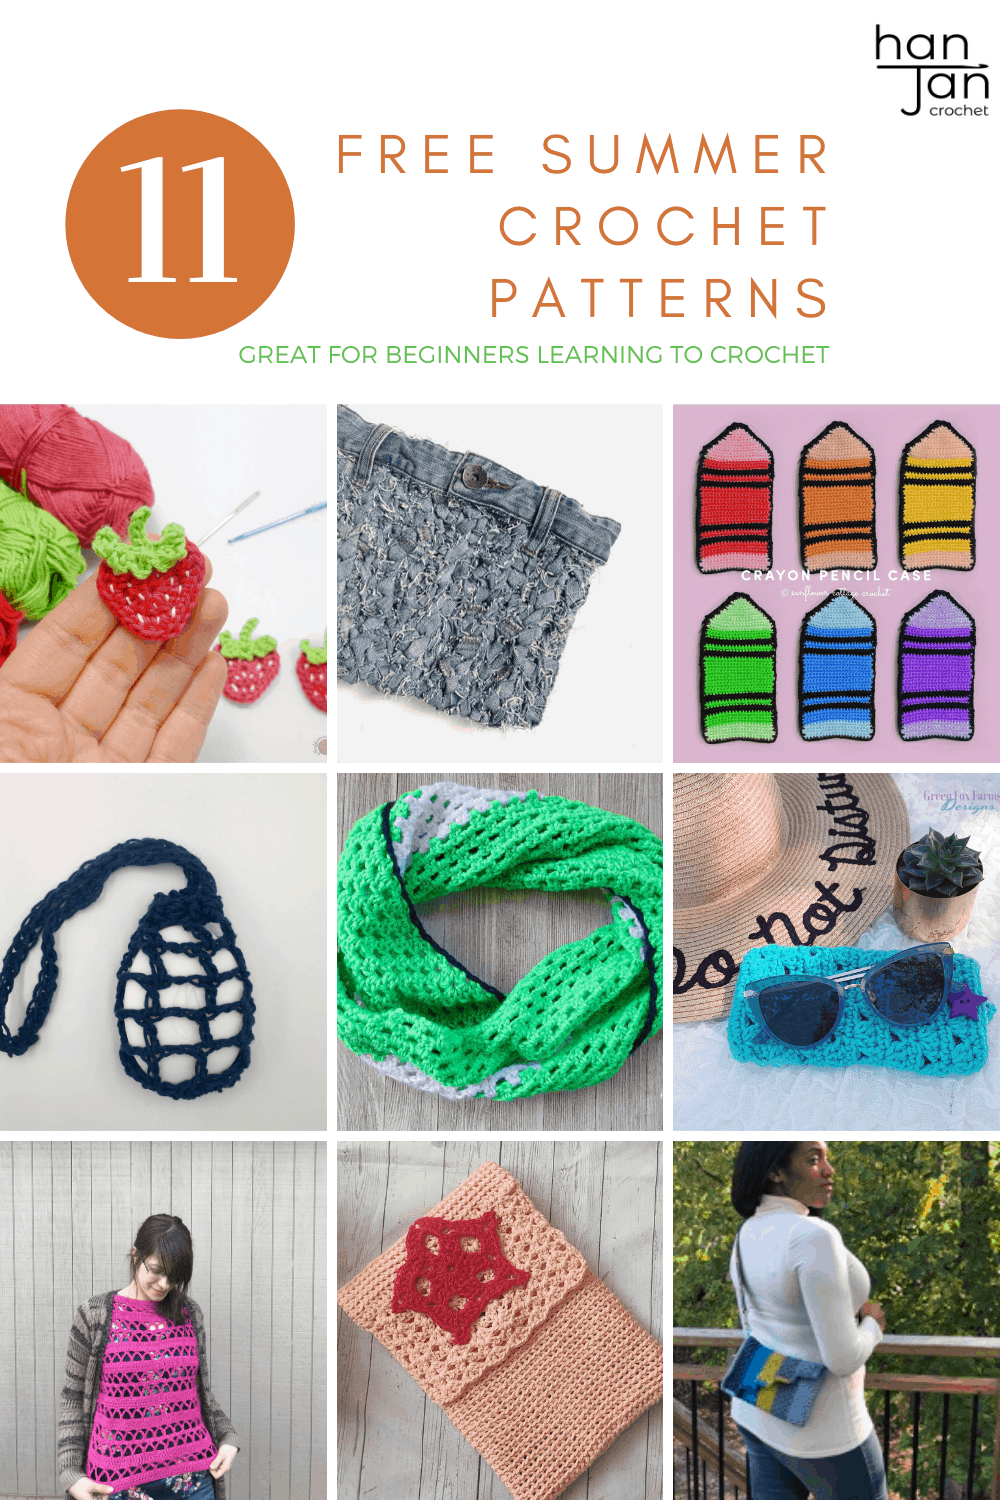 11 free beginner crochet patterns for summer. From bags to cowls and scarves to appliqués, learn to crochet with these fun, fresh patterns.